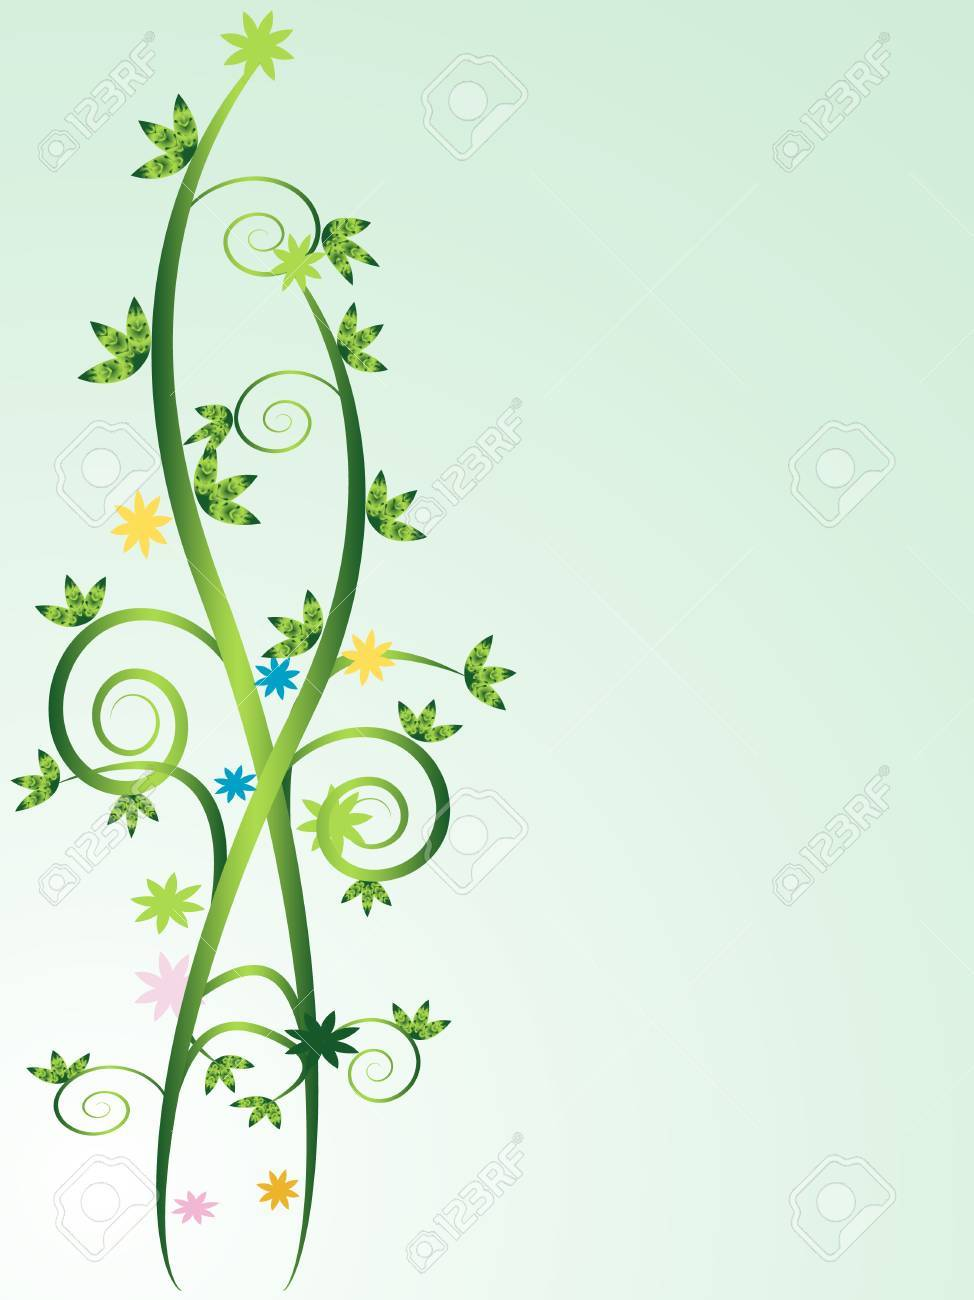 Floral Vines Background With Space To Insert Your Own Text Royalty 974x1300